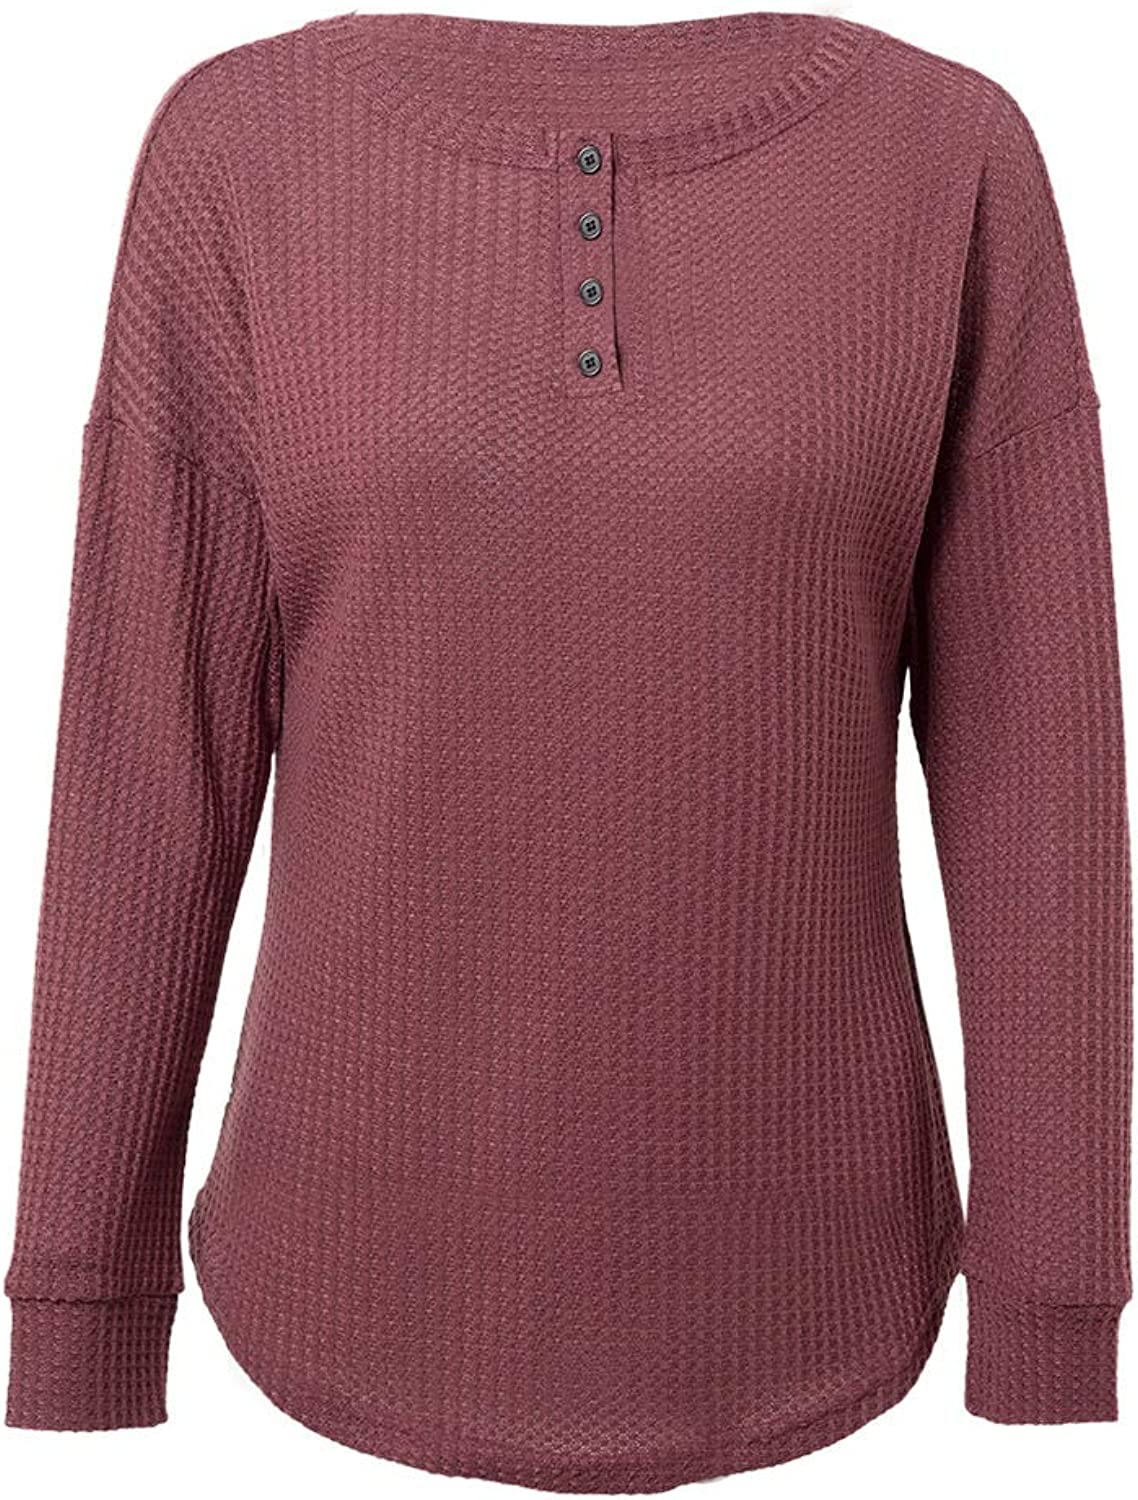 Womens Waffle Knit Tops Comfy Houston Mall Henley Loose Long Bl Sleeve Free shipping anywhere in the nation Shirts